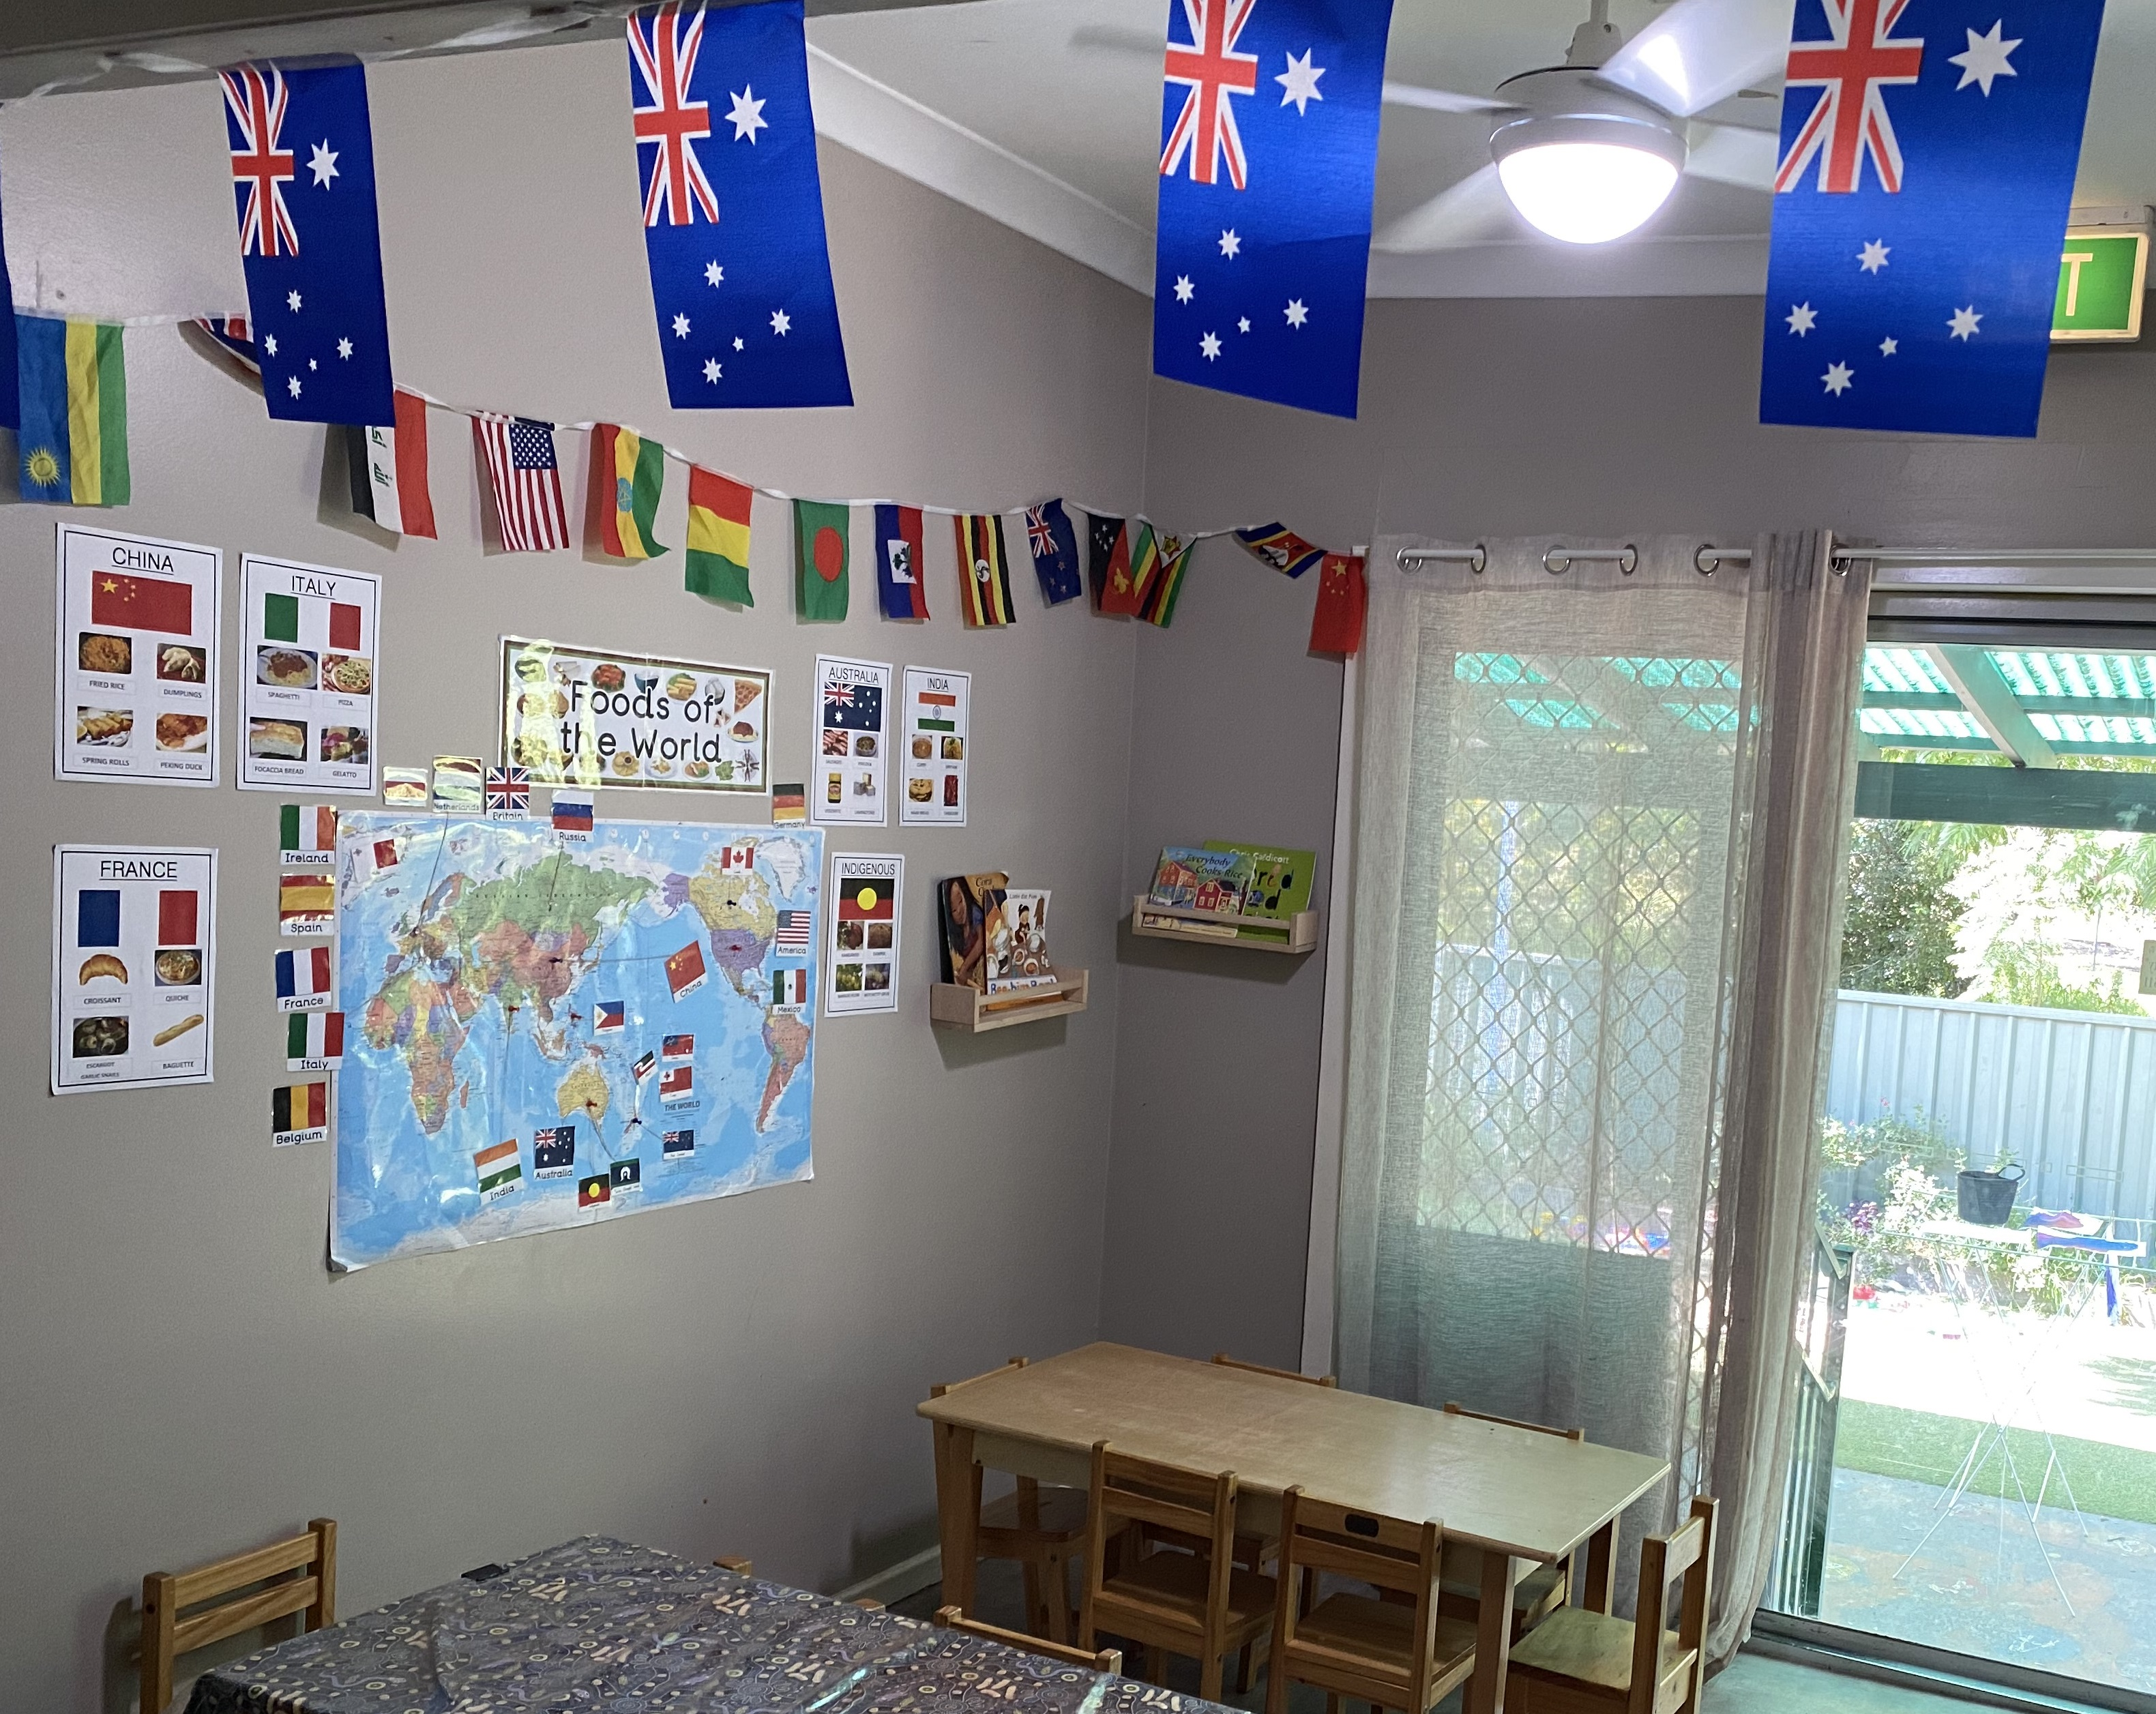 Wyoming Child Care - Flags & Food of the World